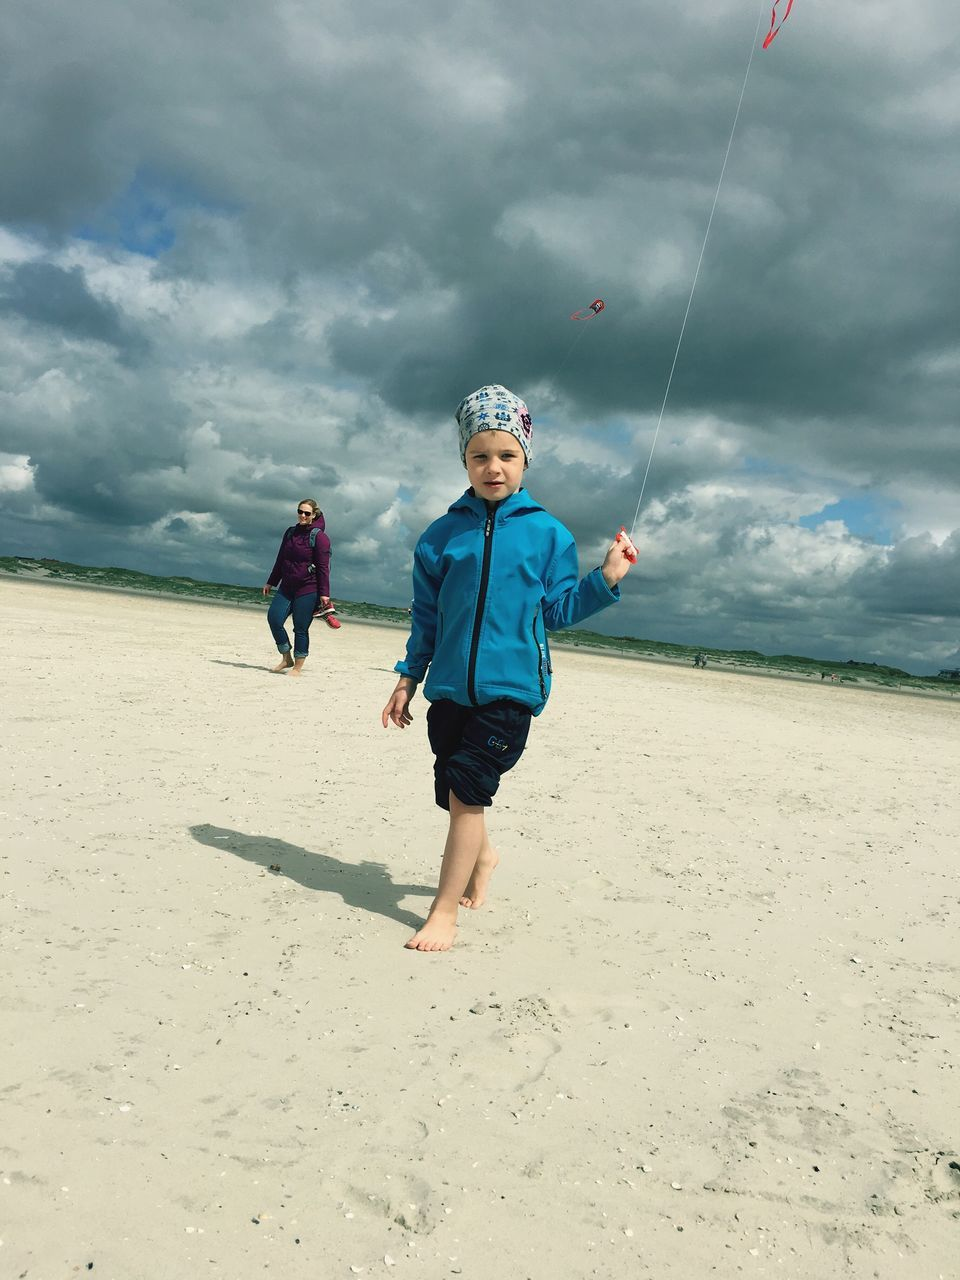 boys, childhood, full length, sand, sky, cloud - sky, leisure activity, beach, outdoors, real people, front view, looking at camera, sea, elementary age, day, two people, nature, senior adult, happiness, motion, togetherness, standing, adventure, portrait, people